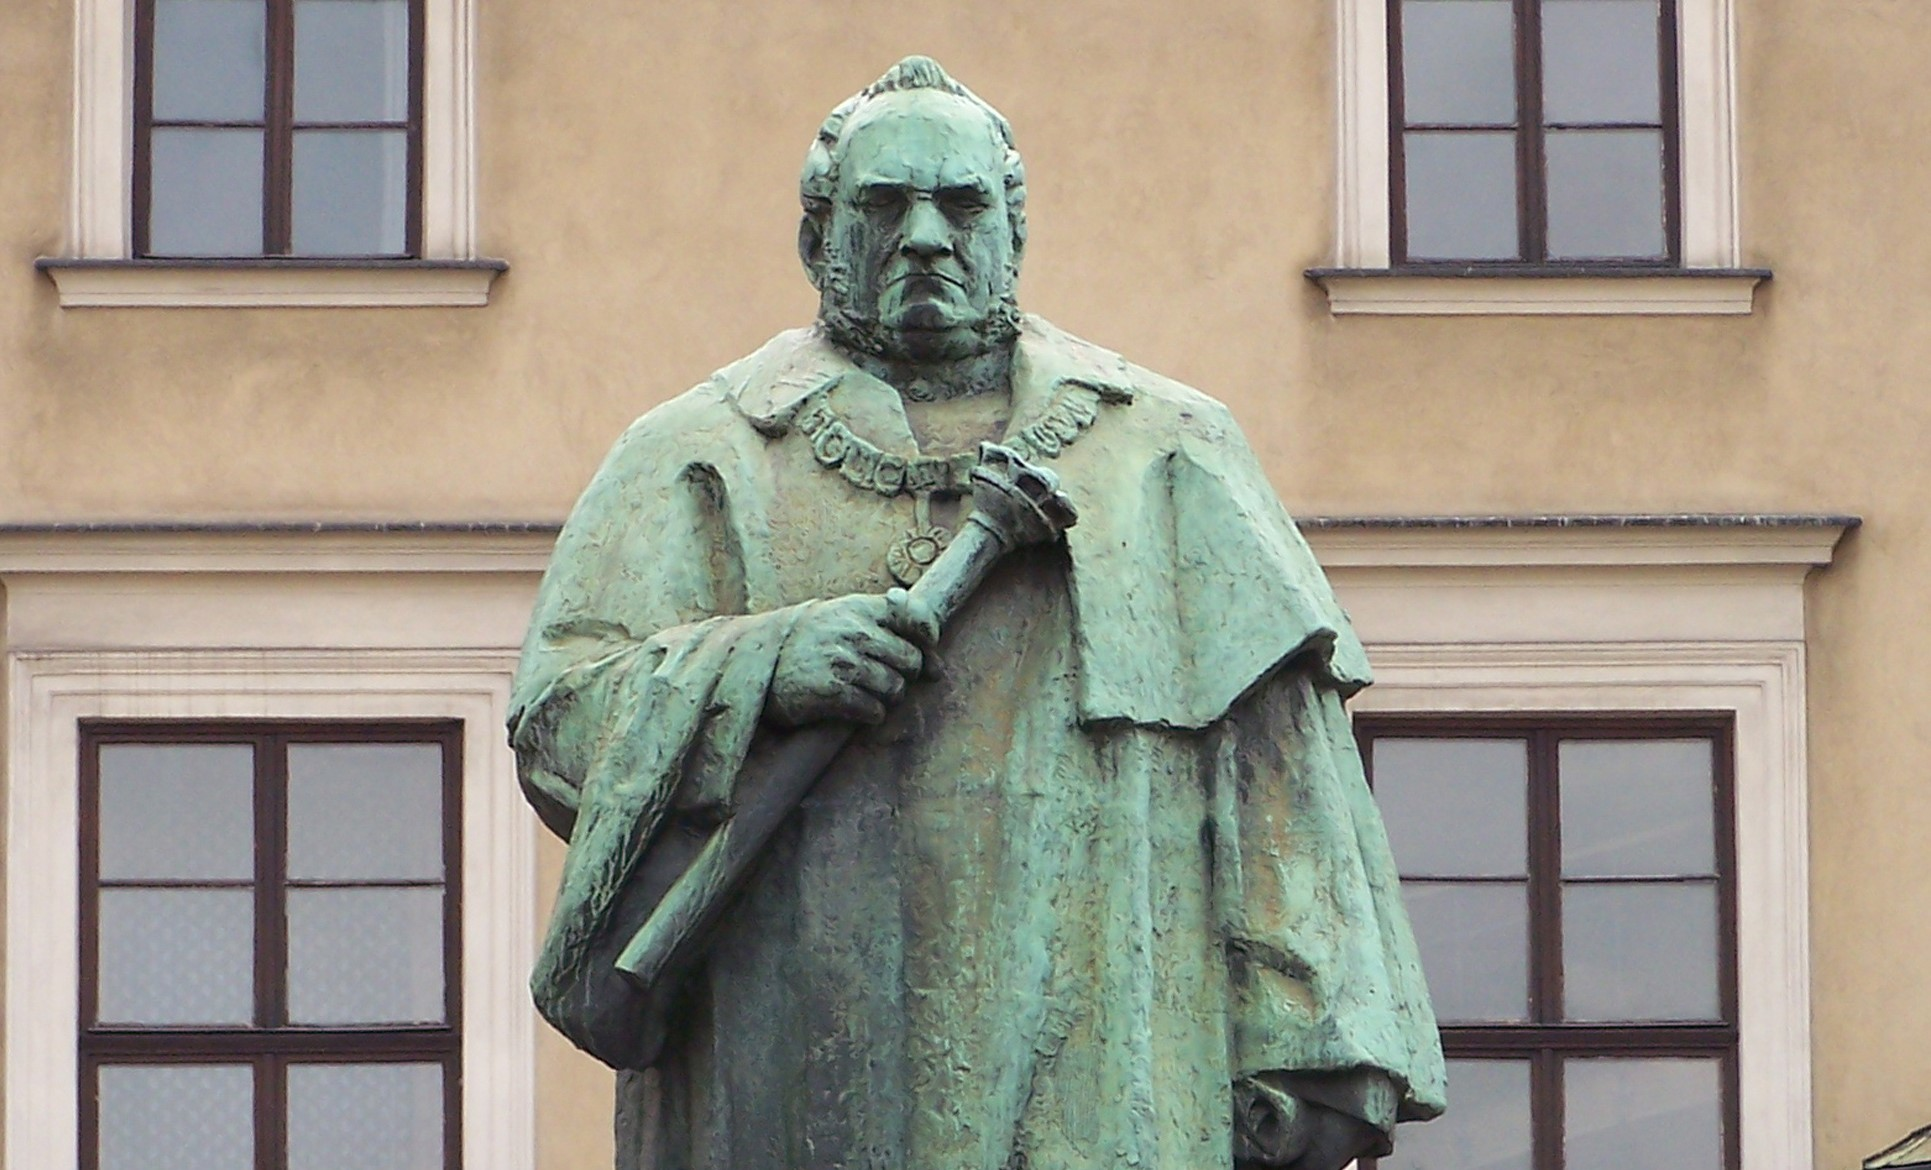 Józef Dietla looks upon the city he helped build